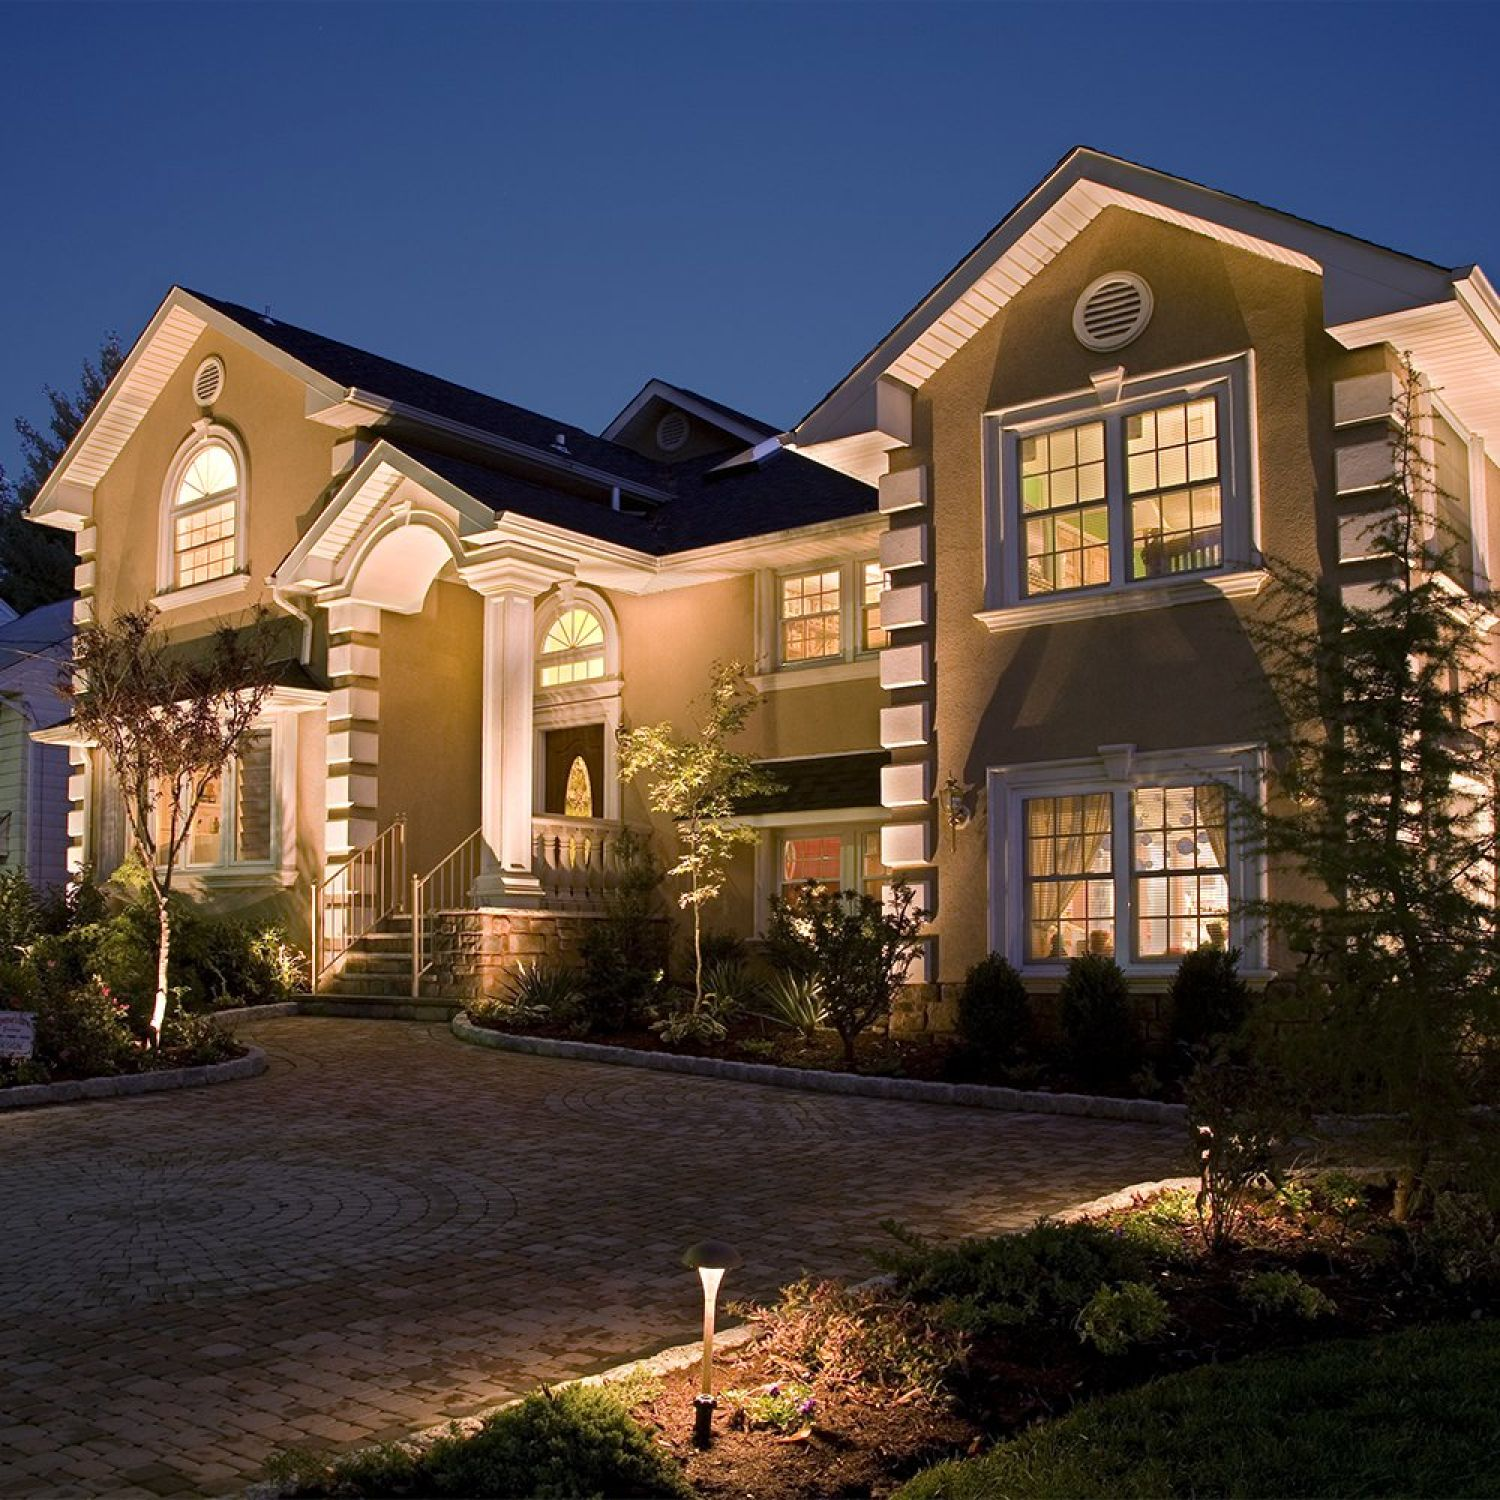 Residential Uplighting Technique